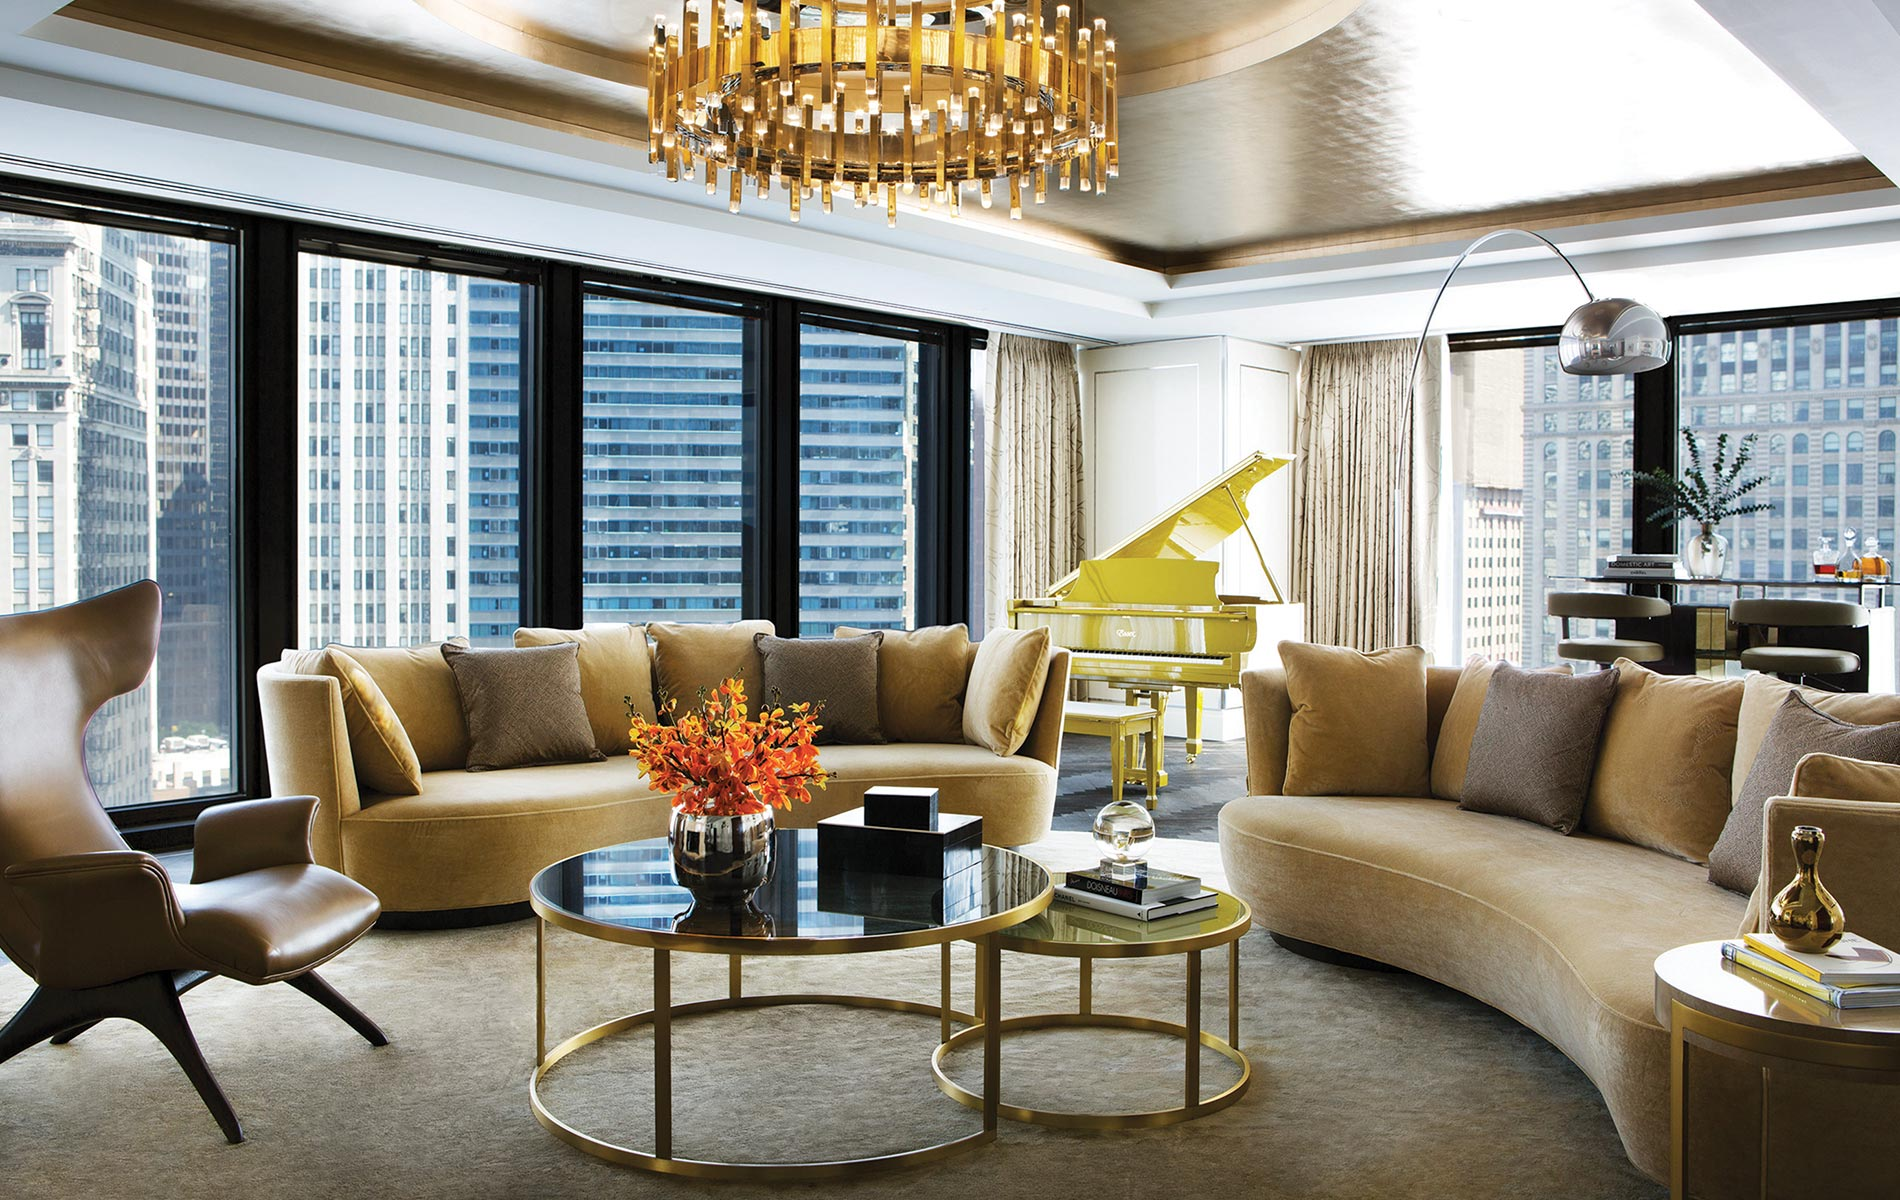 Luxury continues in every guest room, suite, dining space, and common area of the hotel, balancing Mies's impeccable design and the Langham's reputation for decadence.